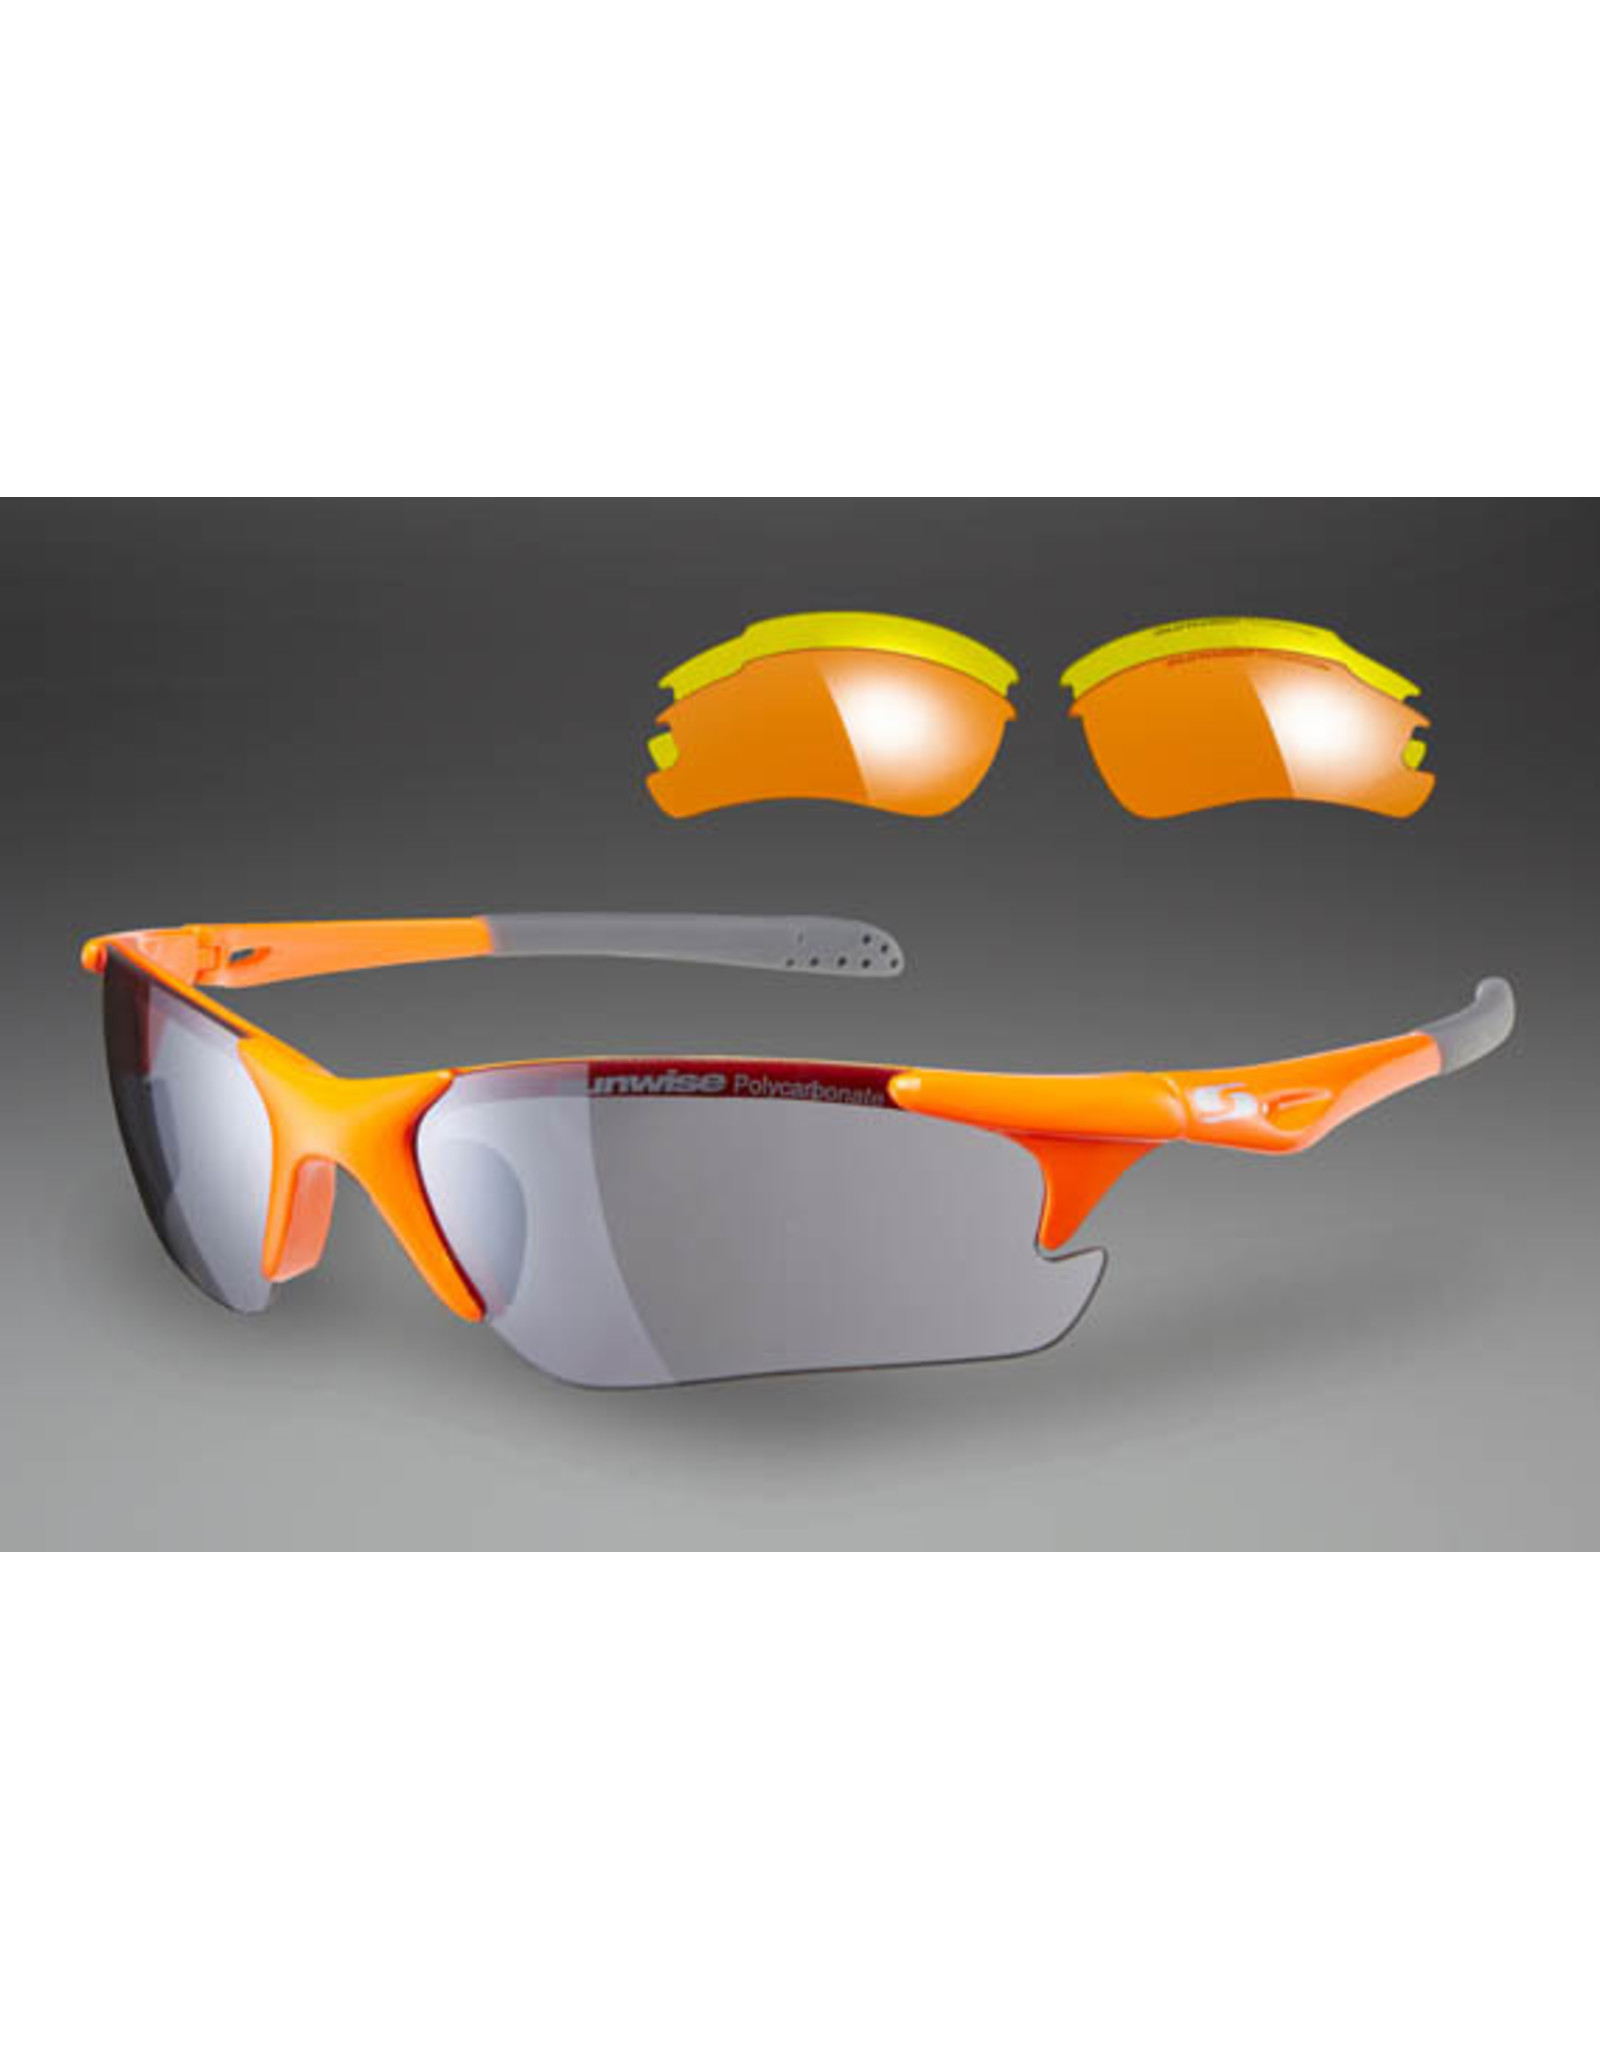 Sunwise Twister Cycling Sunglasses w/interchangeable lenses